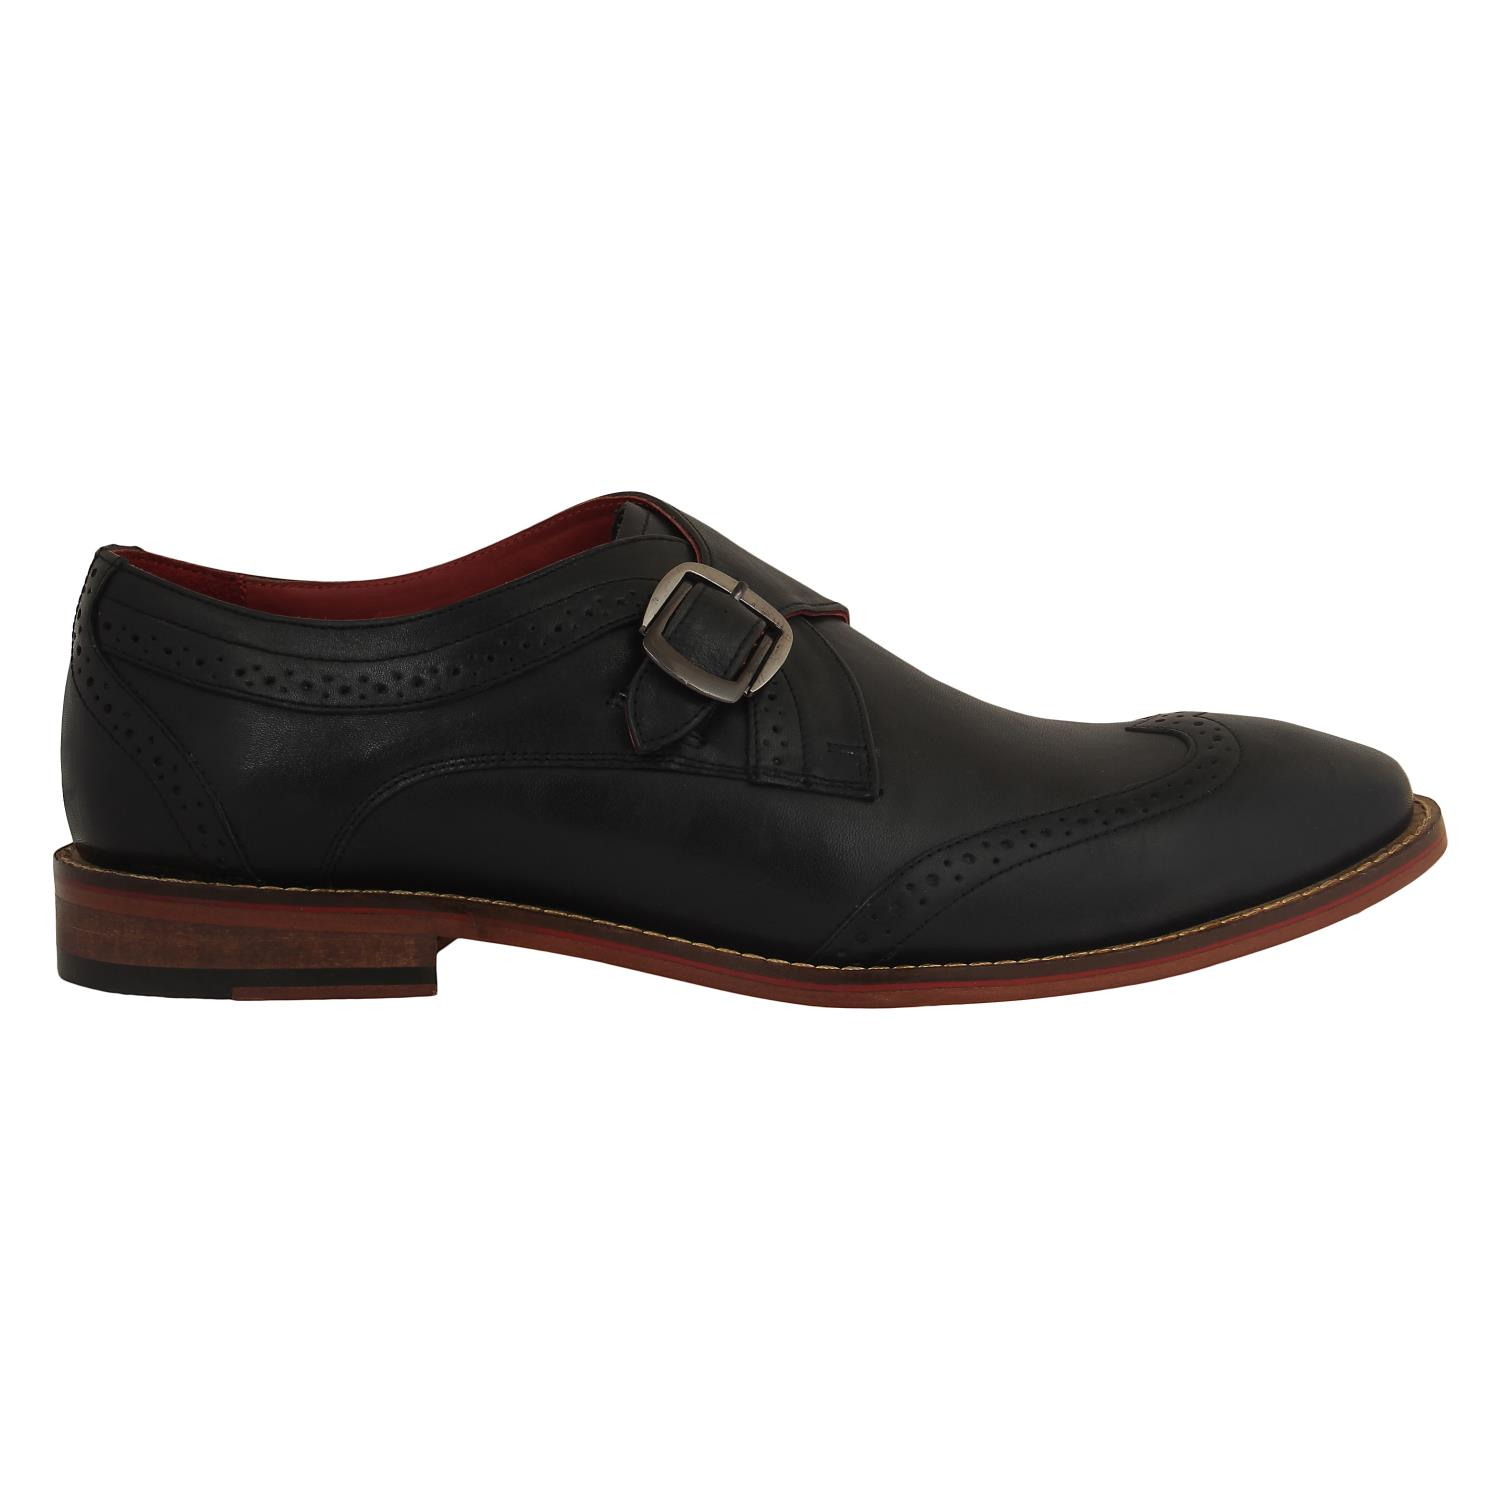 Black slip on Casual shoe